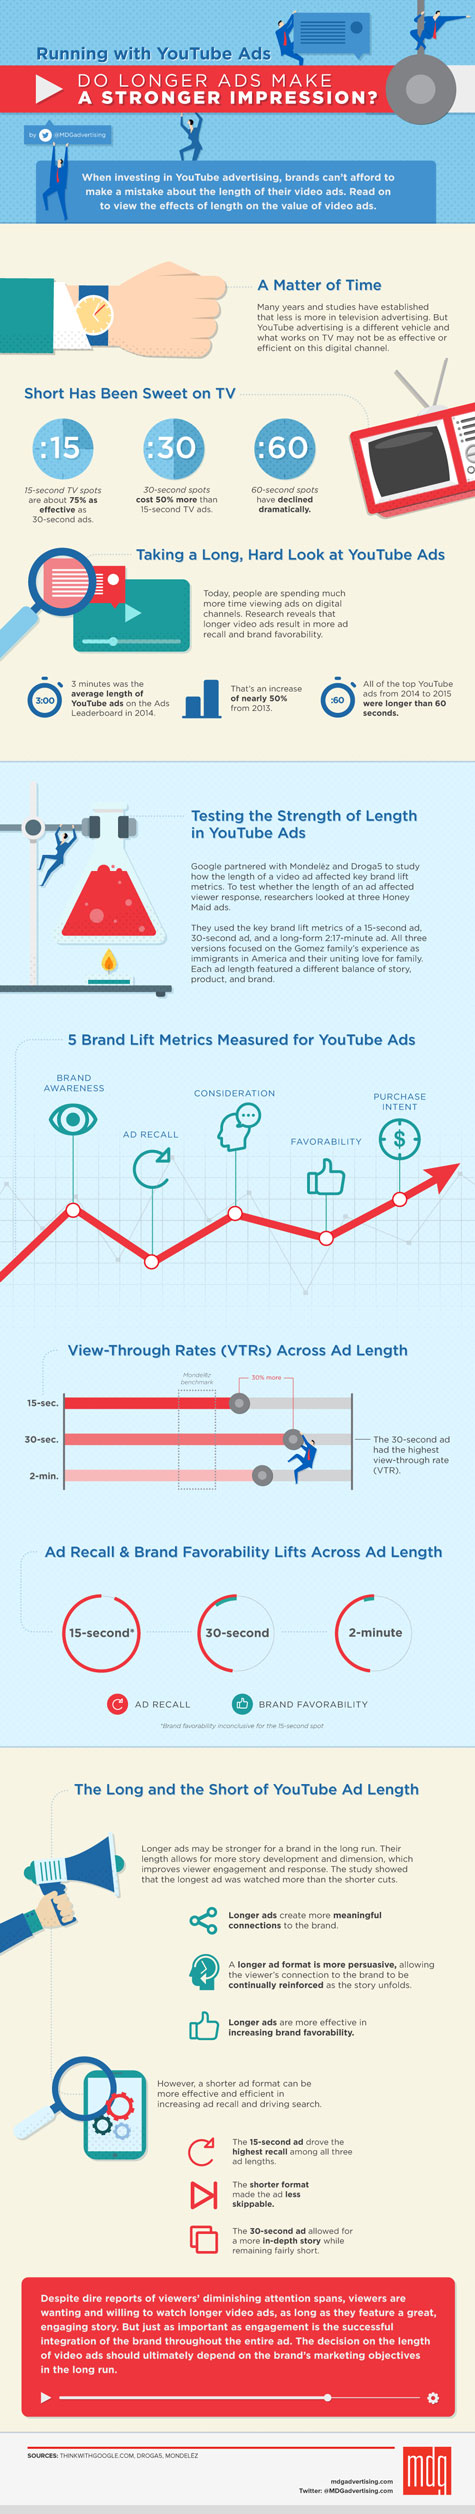 MDG 475 44171 Running with YouTube Ads Infographic 01